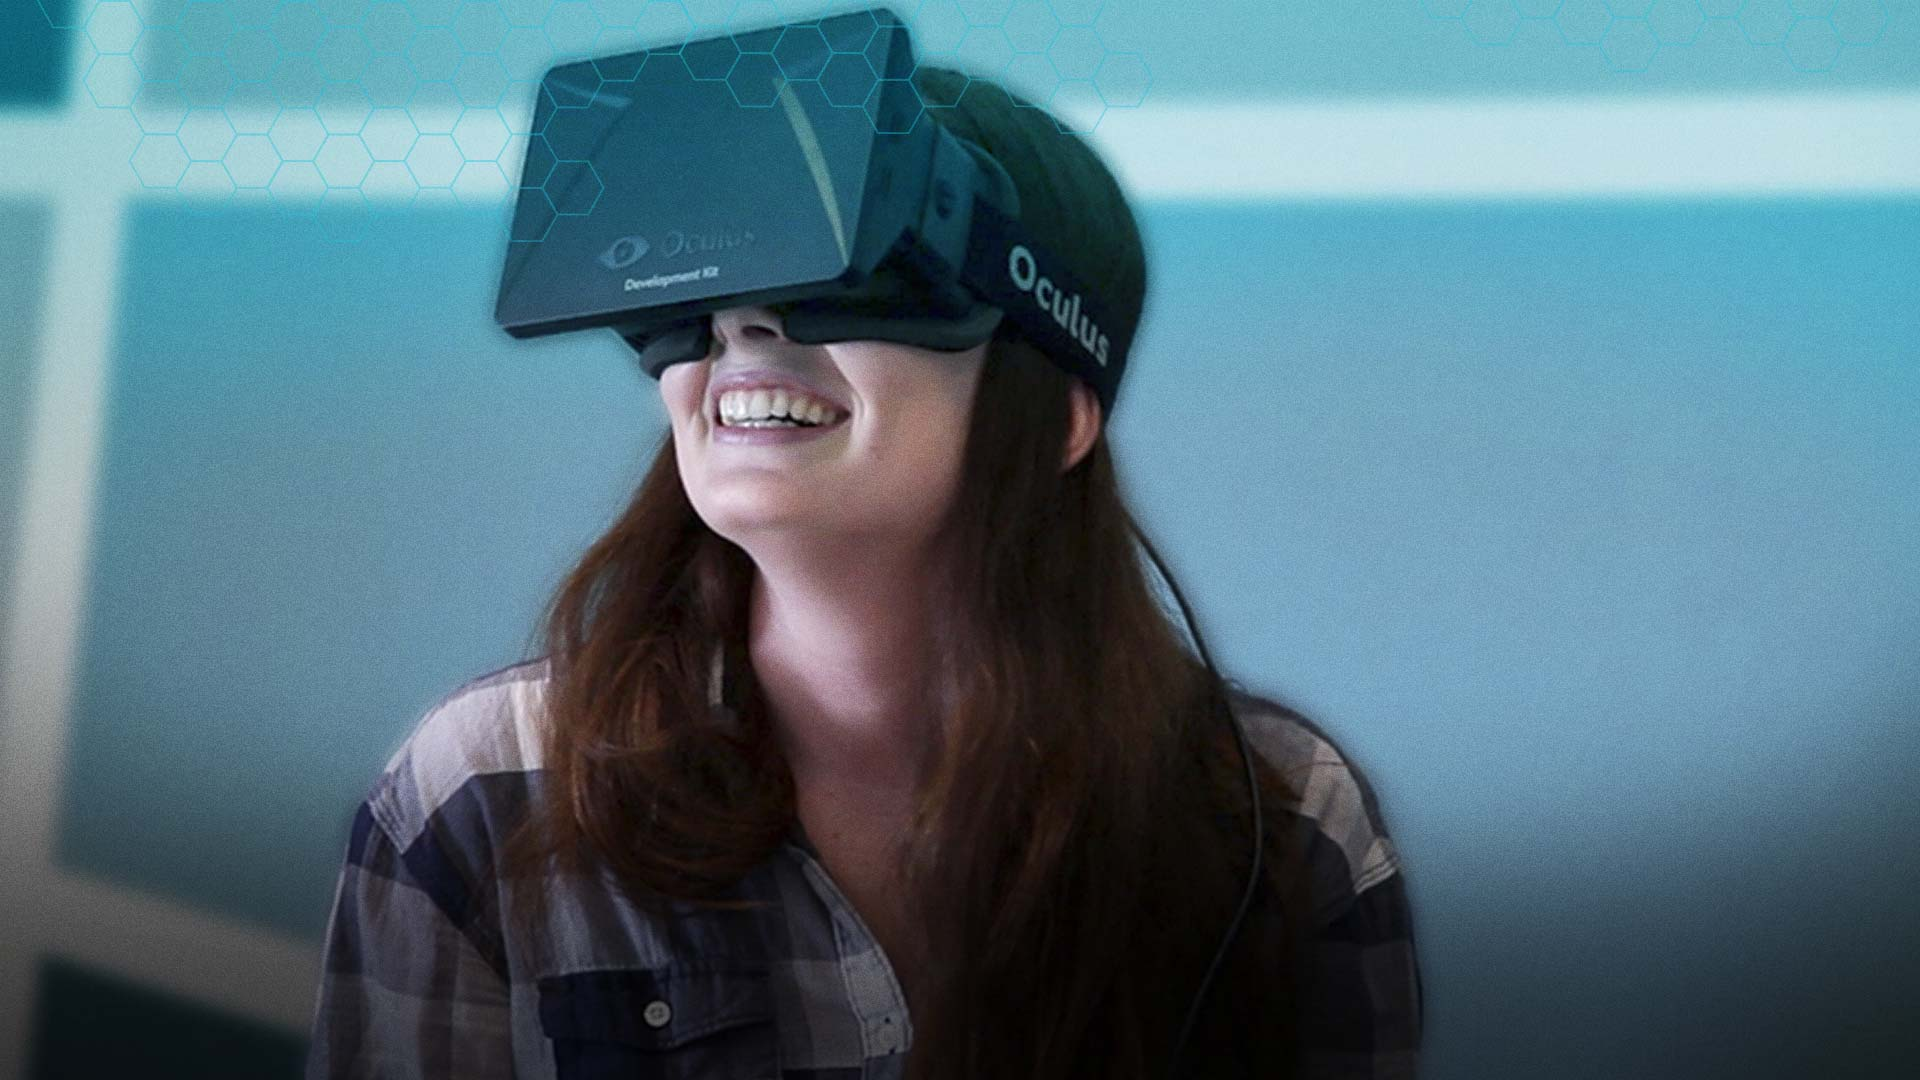 Artistry in Games oculus-rift1 Blurred Lines: Virtual Reality and the Future of Player-Character Relationships Features  virtual reality sony hmz-t3q player-character relationships oculus rift